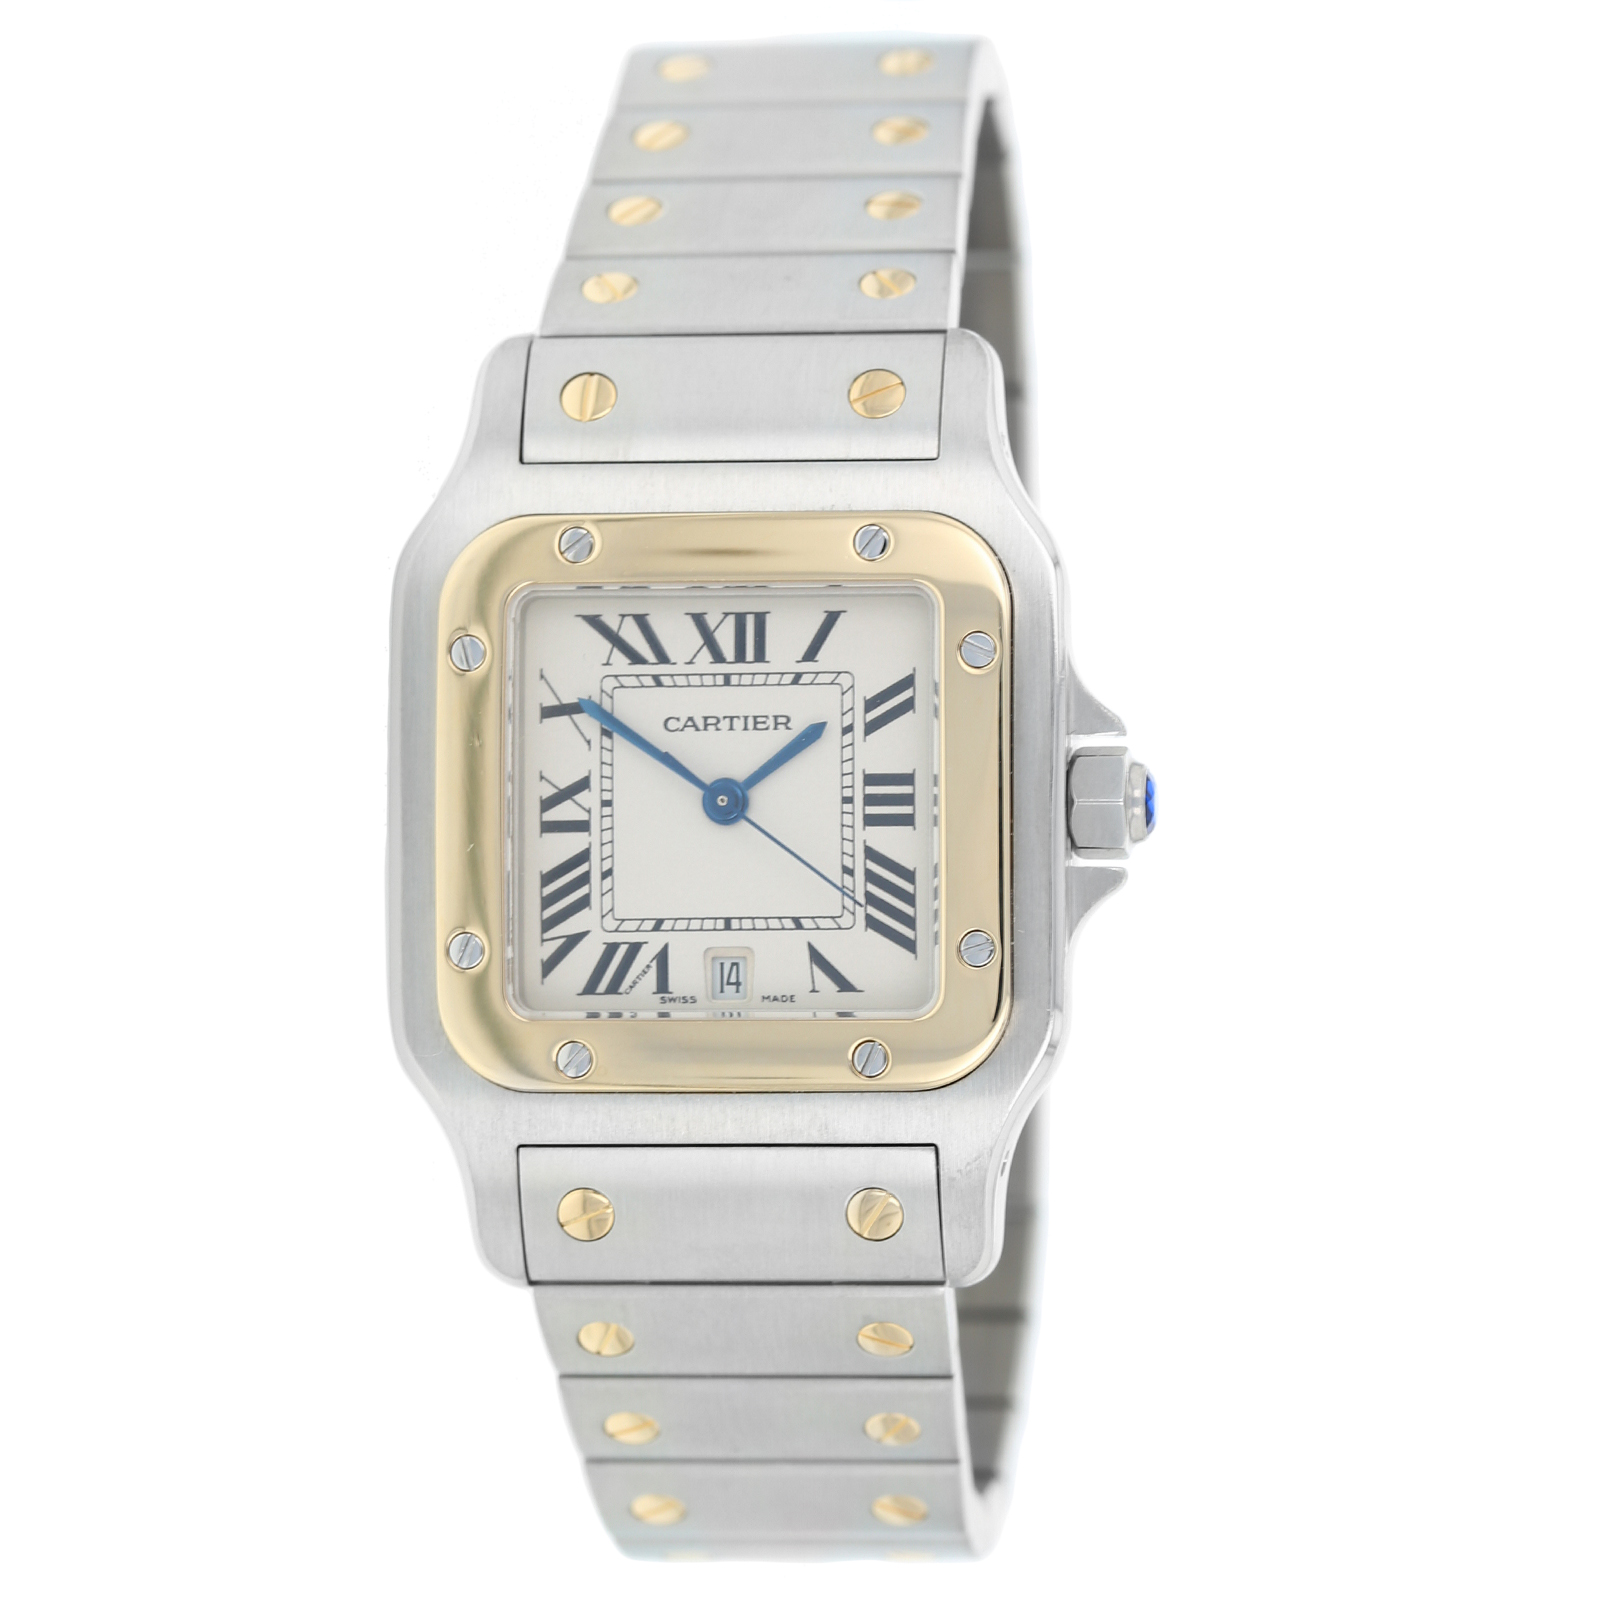 Pre-Owned Santos de Cartier Mens Watch